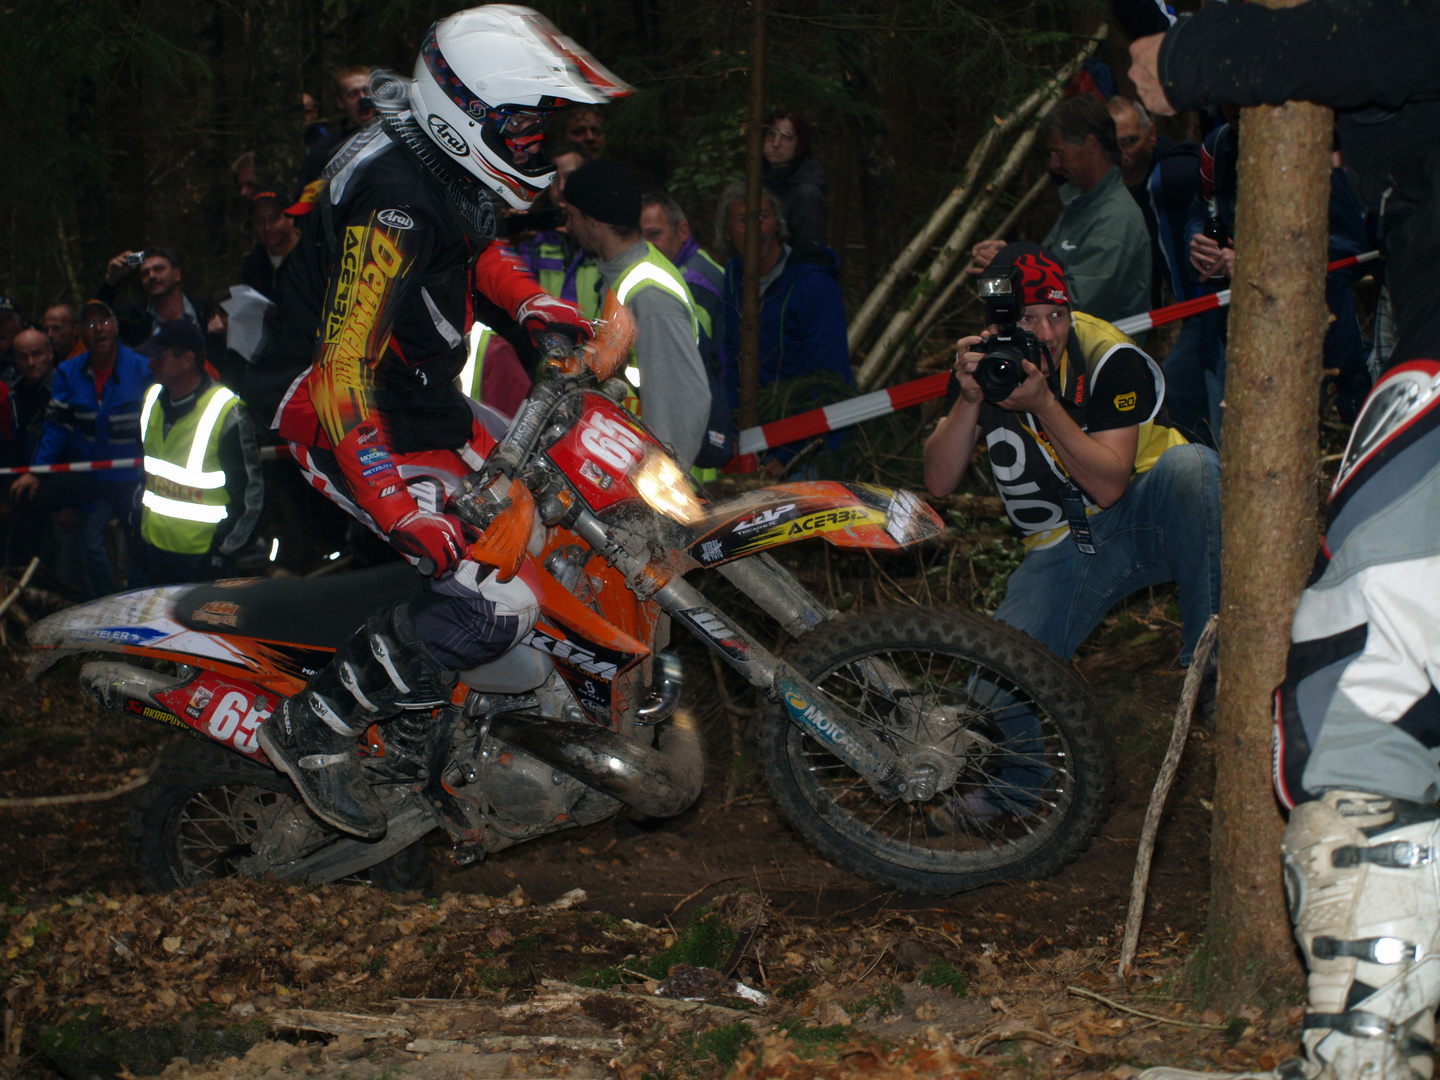 that´s my home race